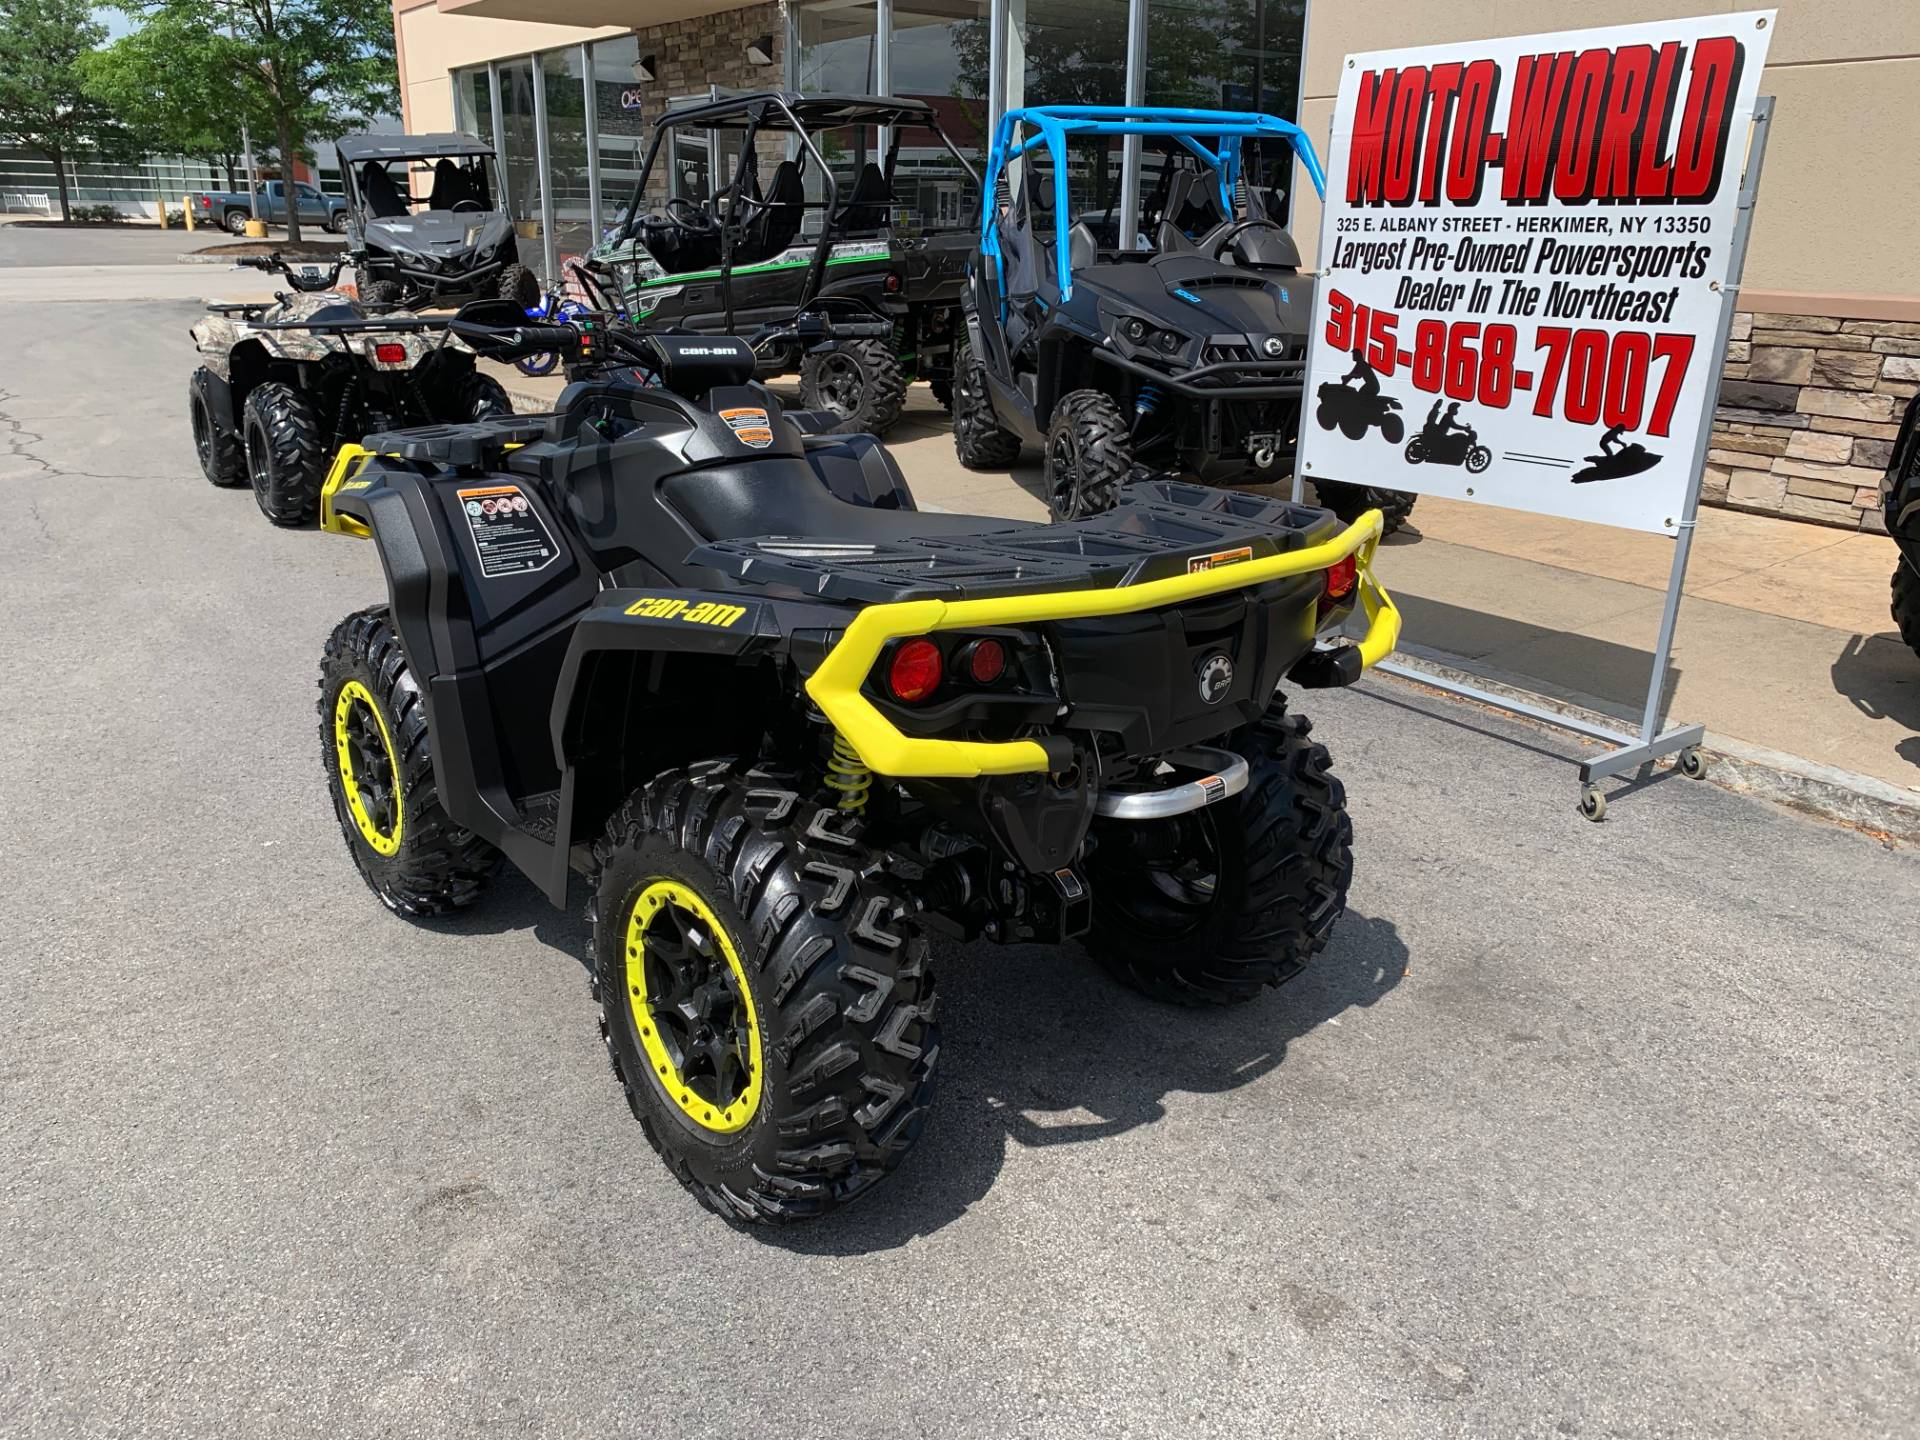 2019 Can-Am Outlander XT-P 850 in Herkimer, New York - Photo 6